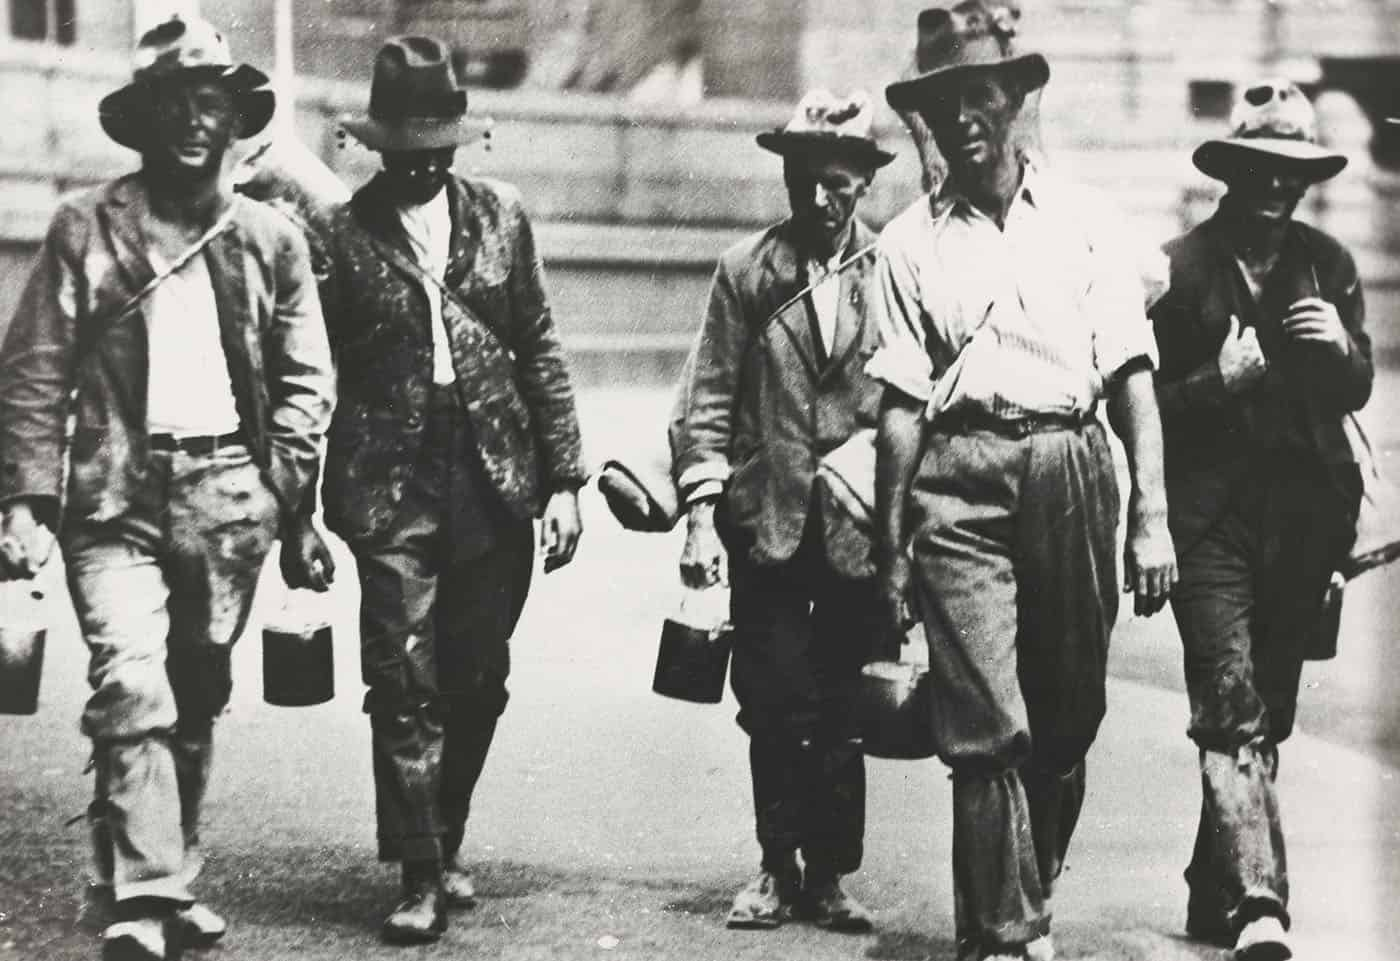 Men looking for work, 1930. National Library of Australia